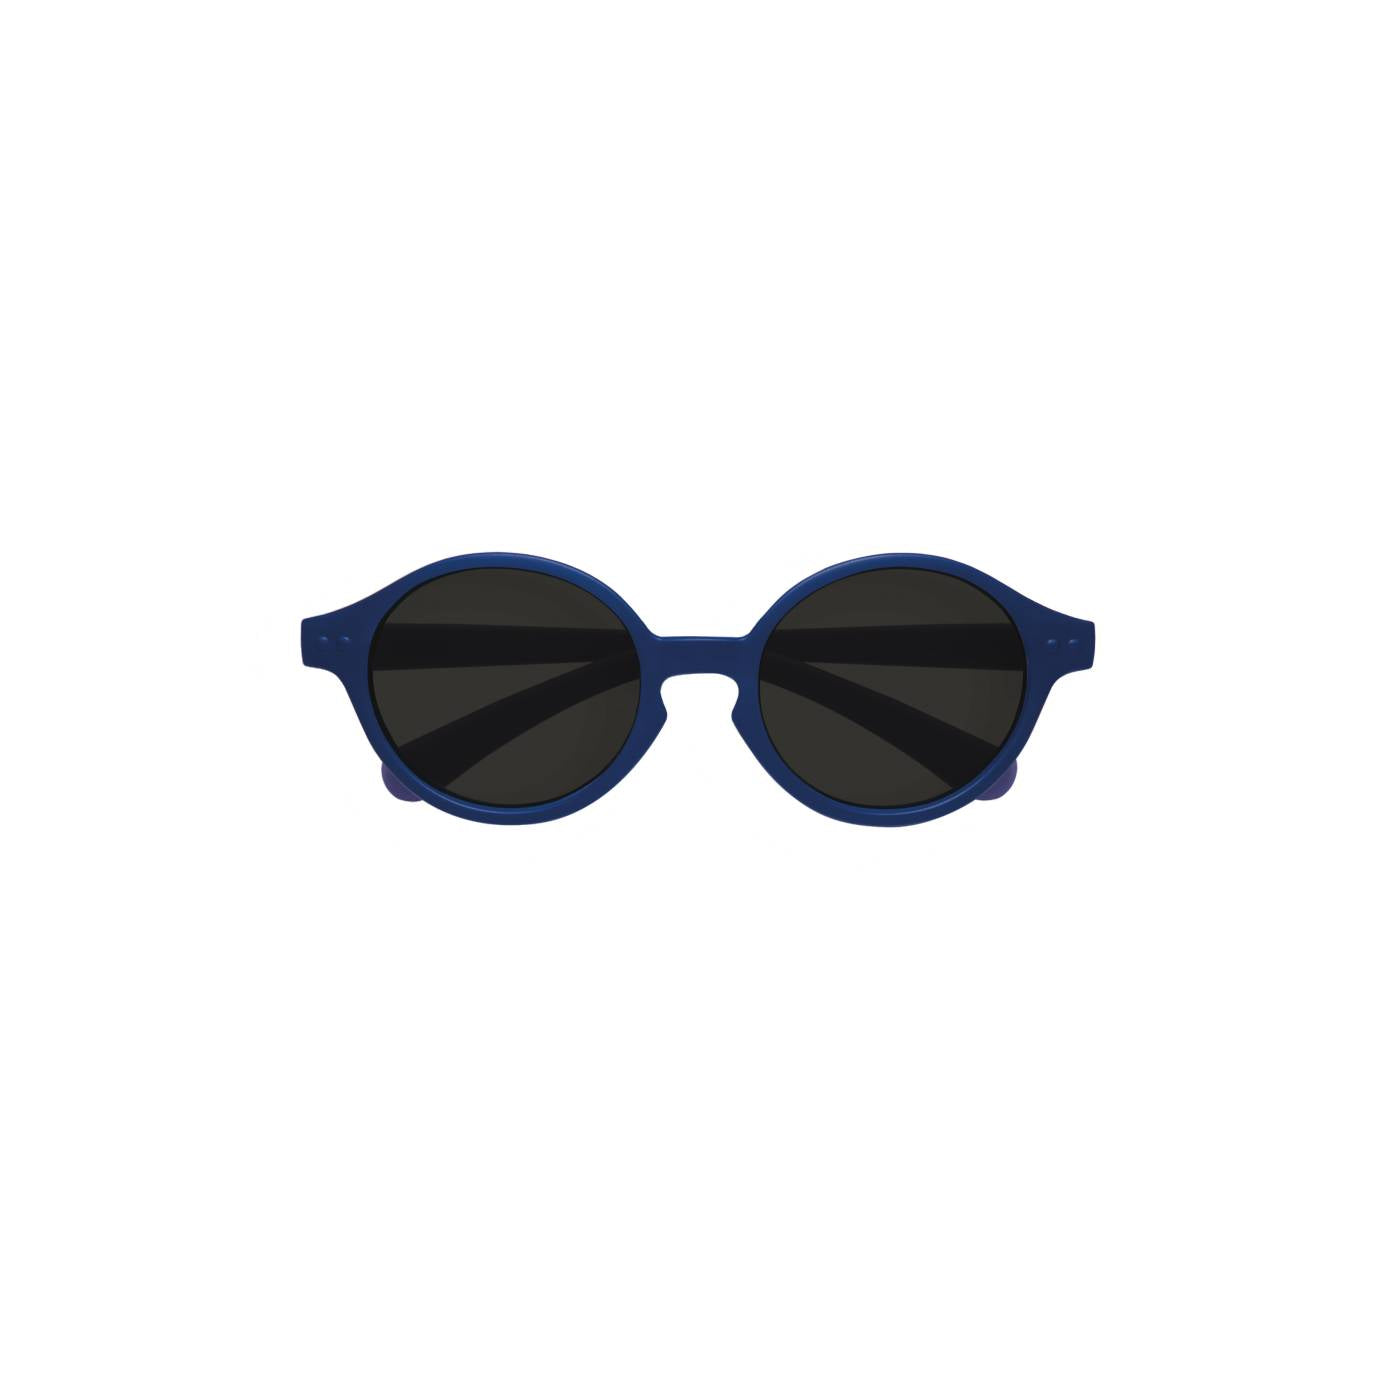 IZIPIZI - Kids Sunglasses 12-36mo